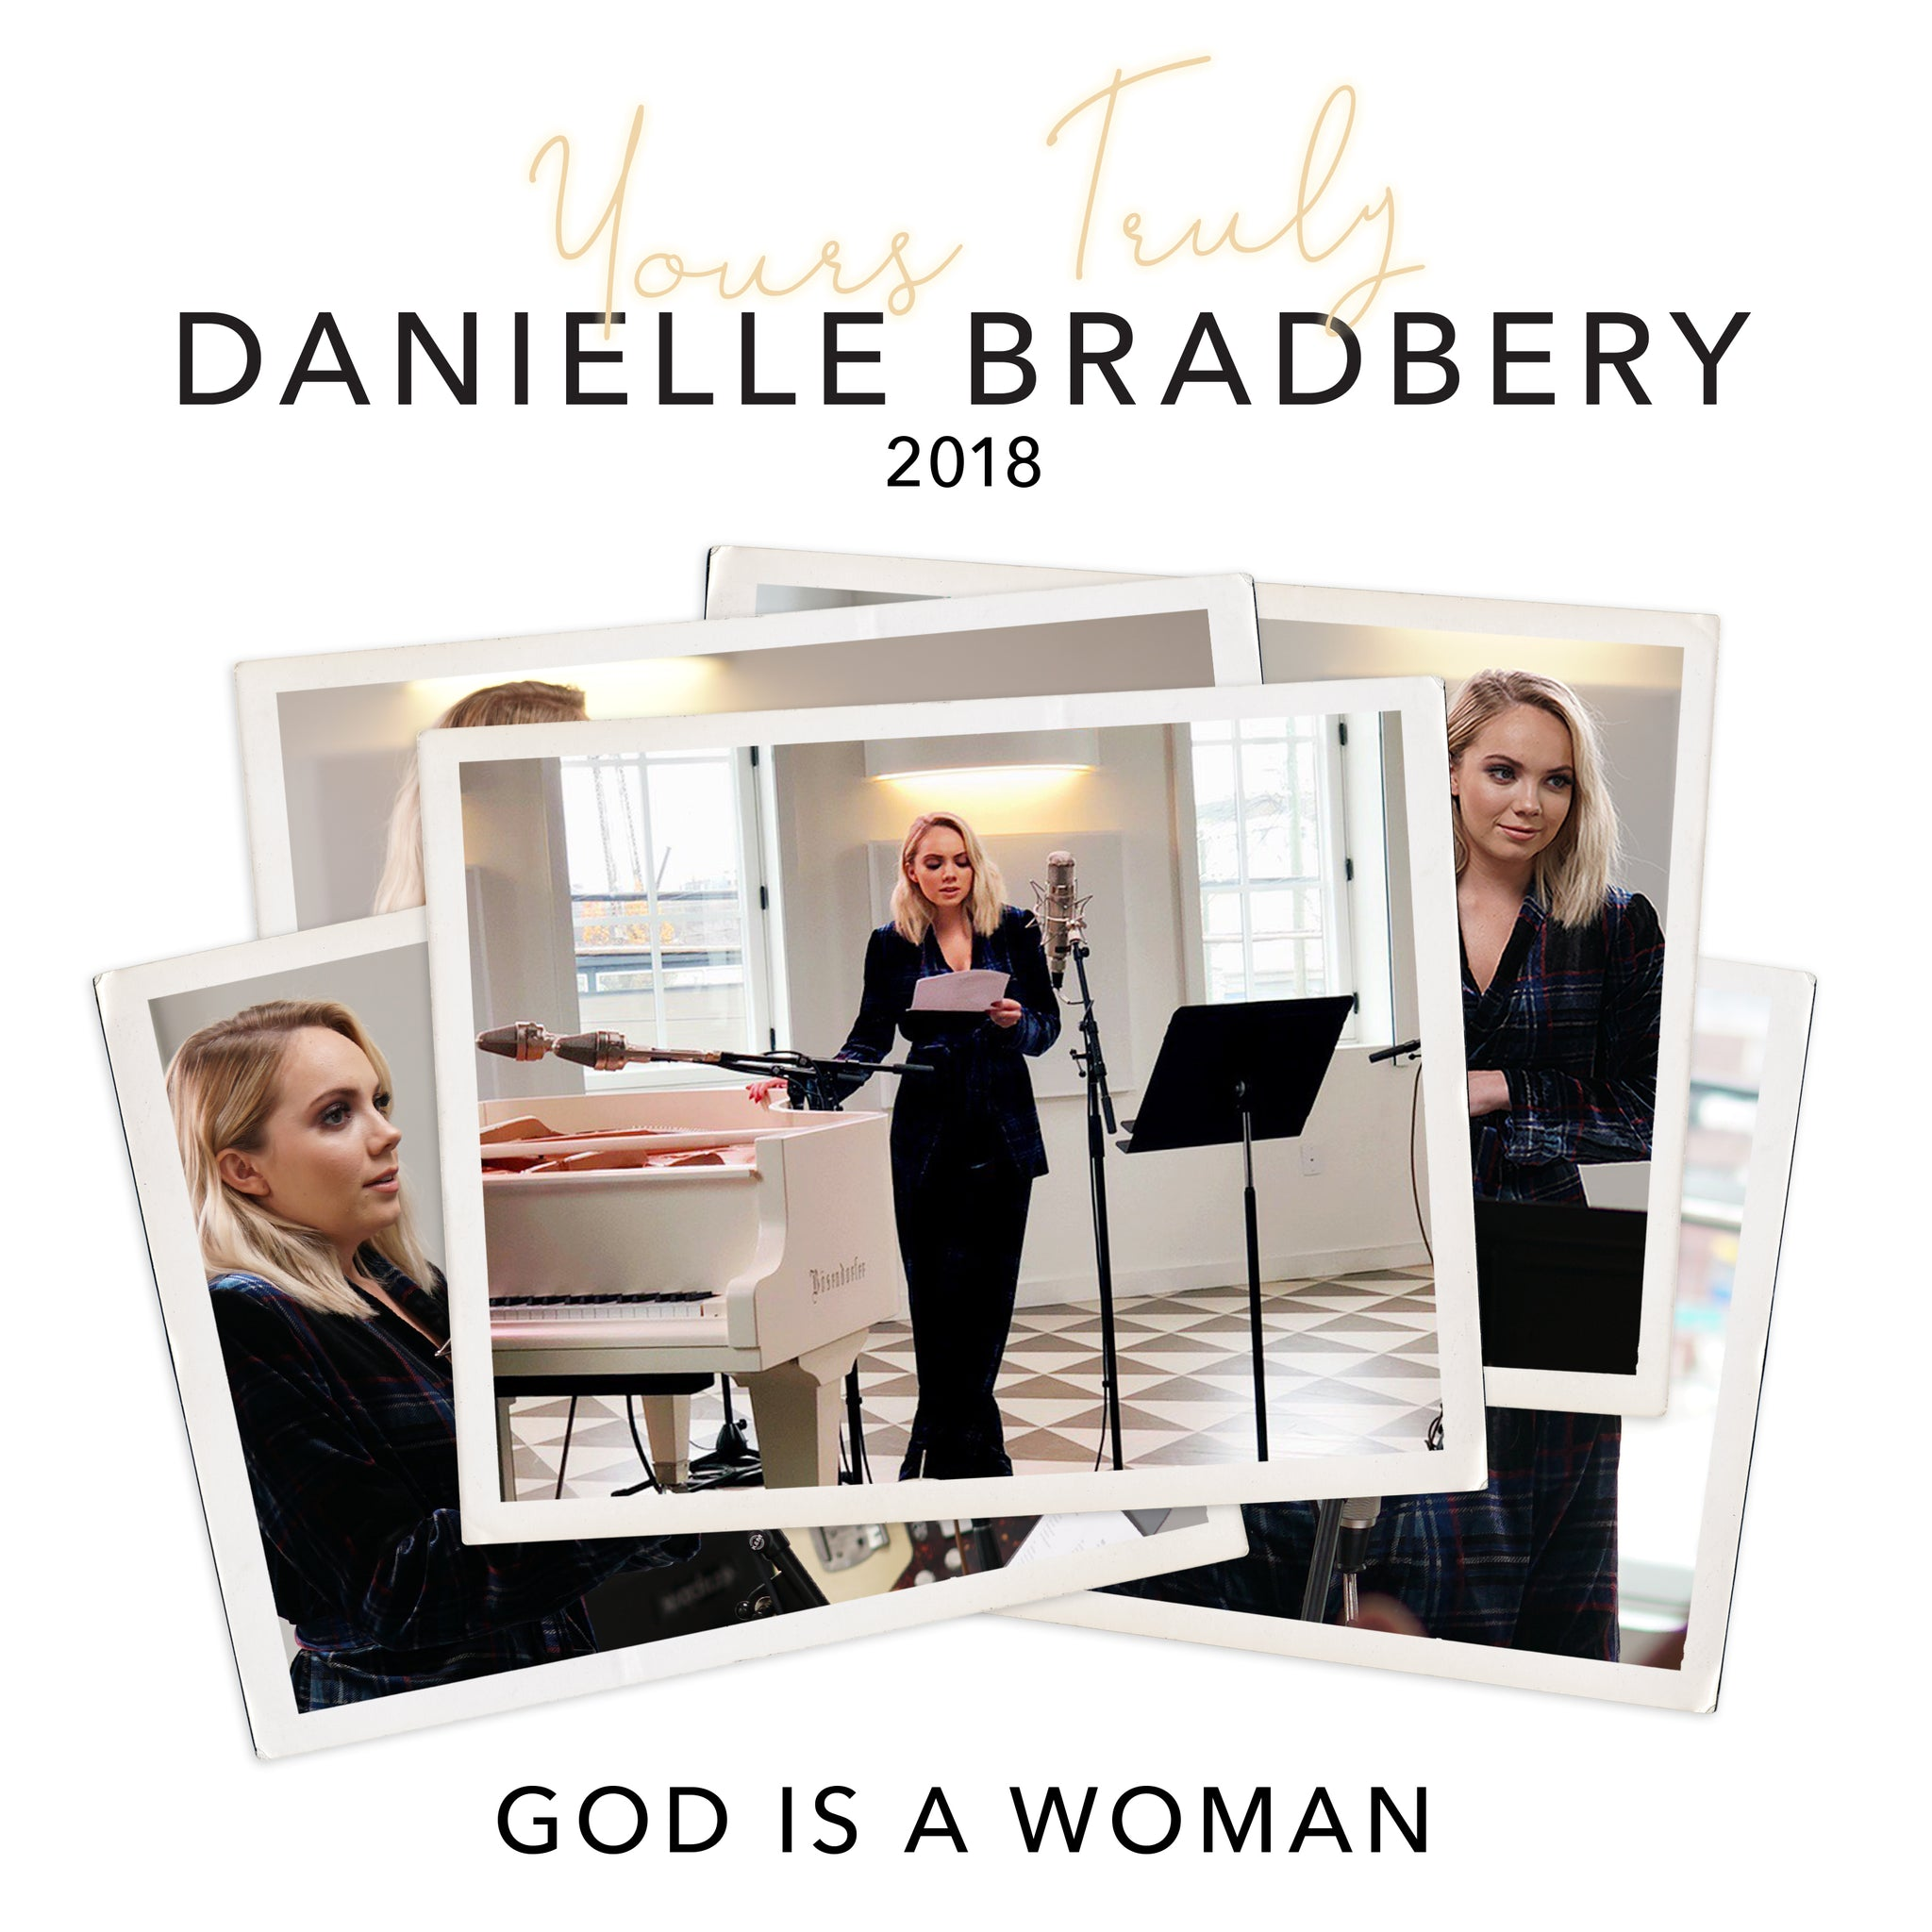 Danielle Bradbery - God Is A Woman (Yours Truly: 2018) - Digital Downl |  Music | Big Machine Label Group